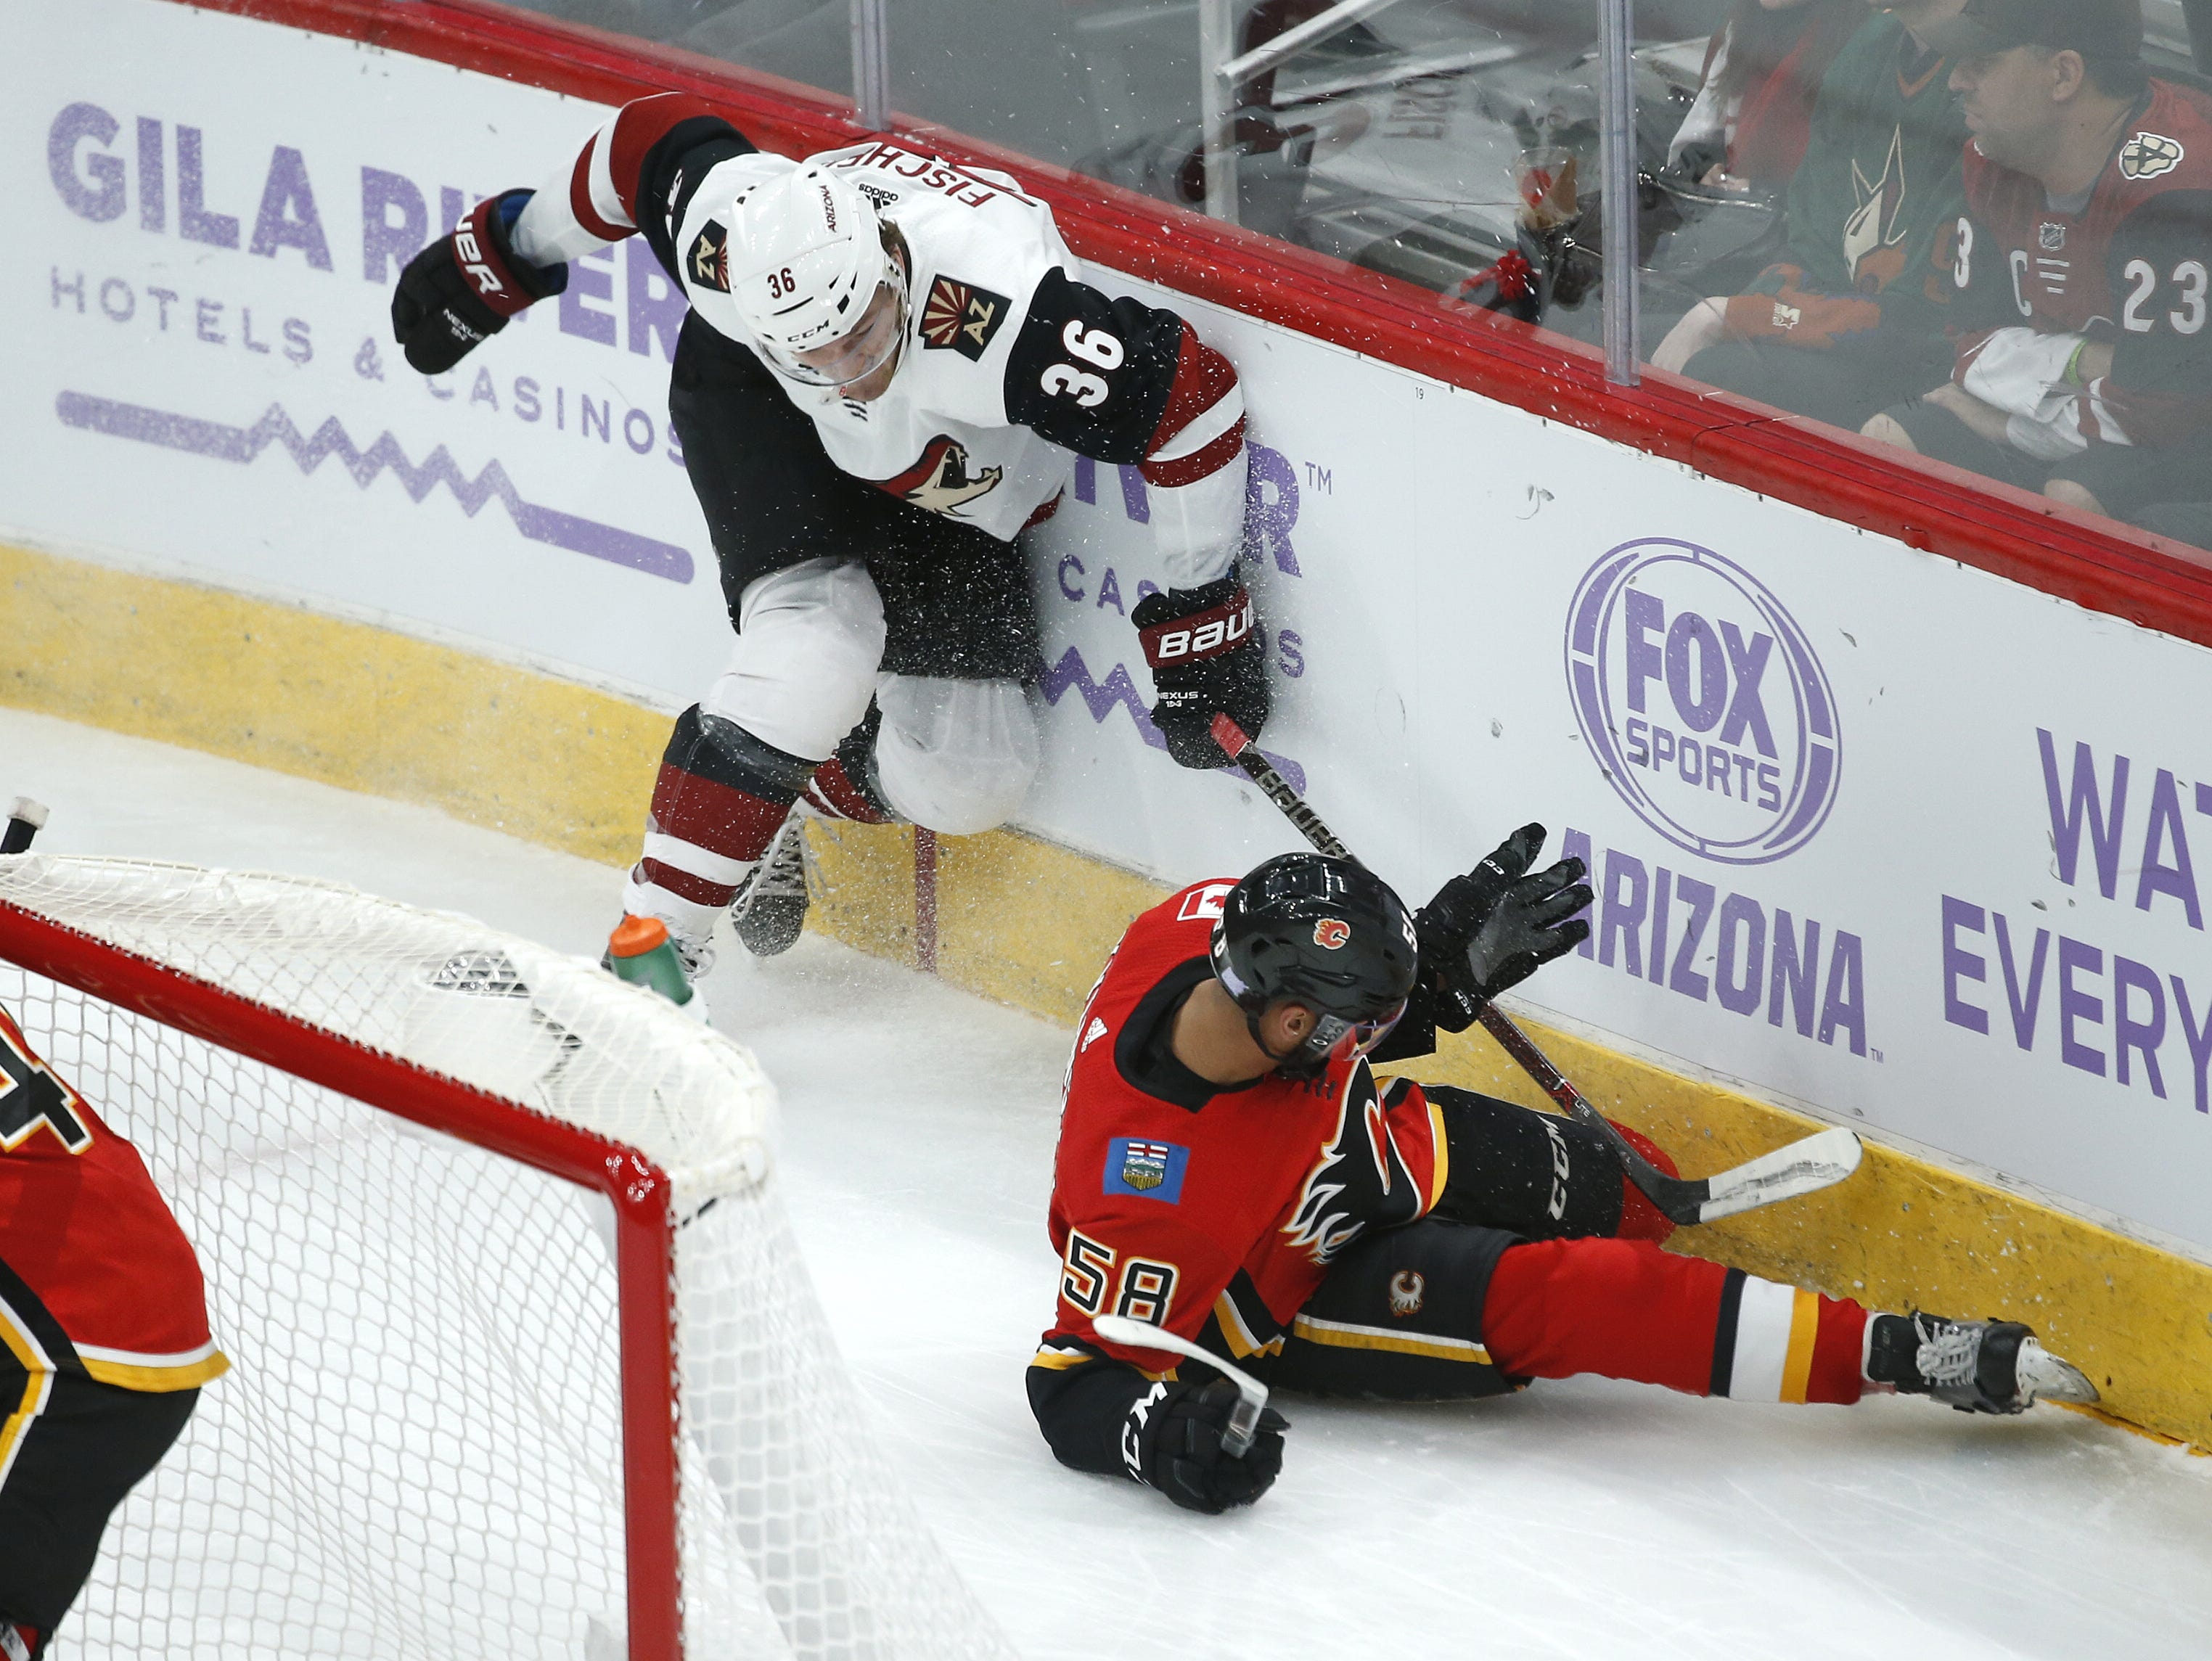 Coyotes' Christian Fischer (36) and Flames' Oliver Kylington (58) get tangled up on the glass going for a loose puck during the first period at Gila River Arena in Glendale, Ariz. on November 25, 2018.